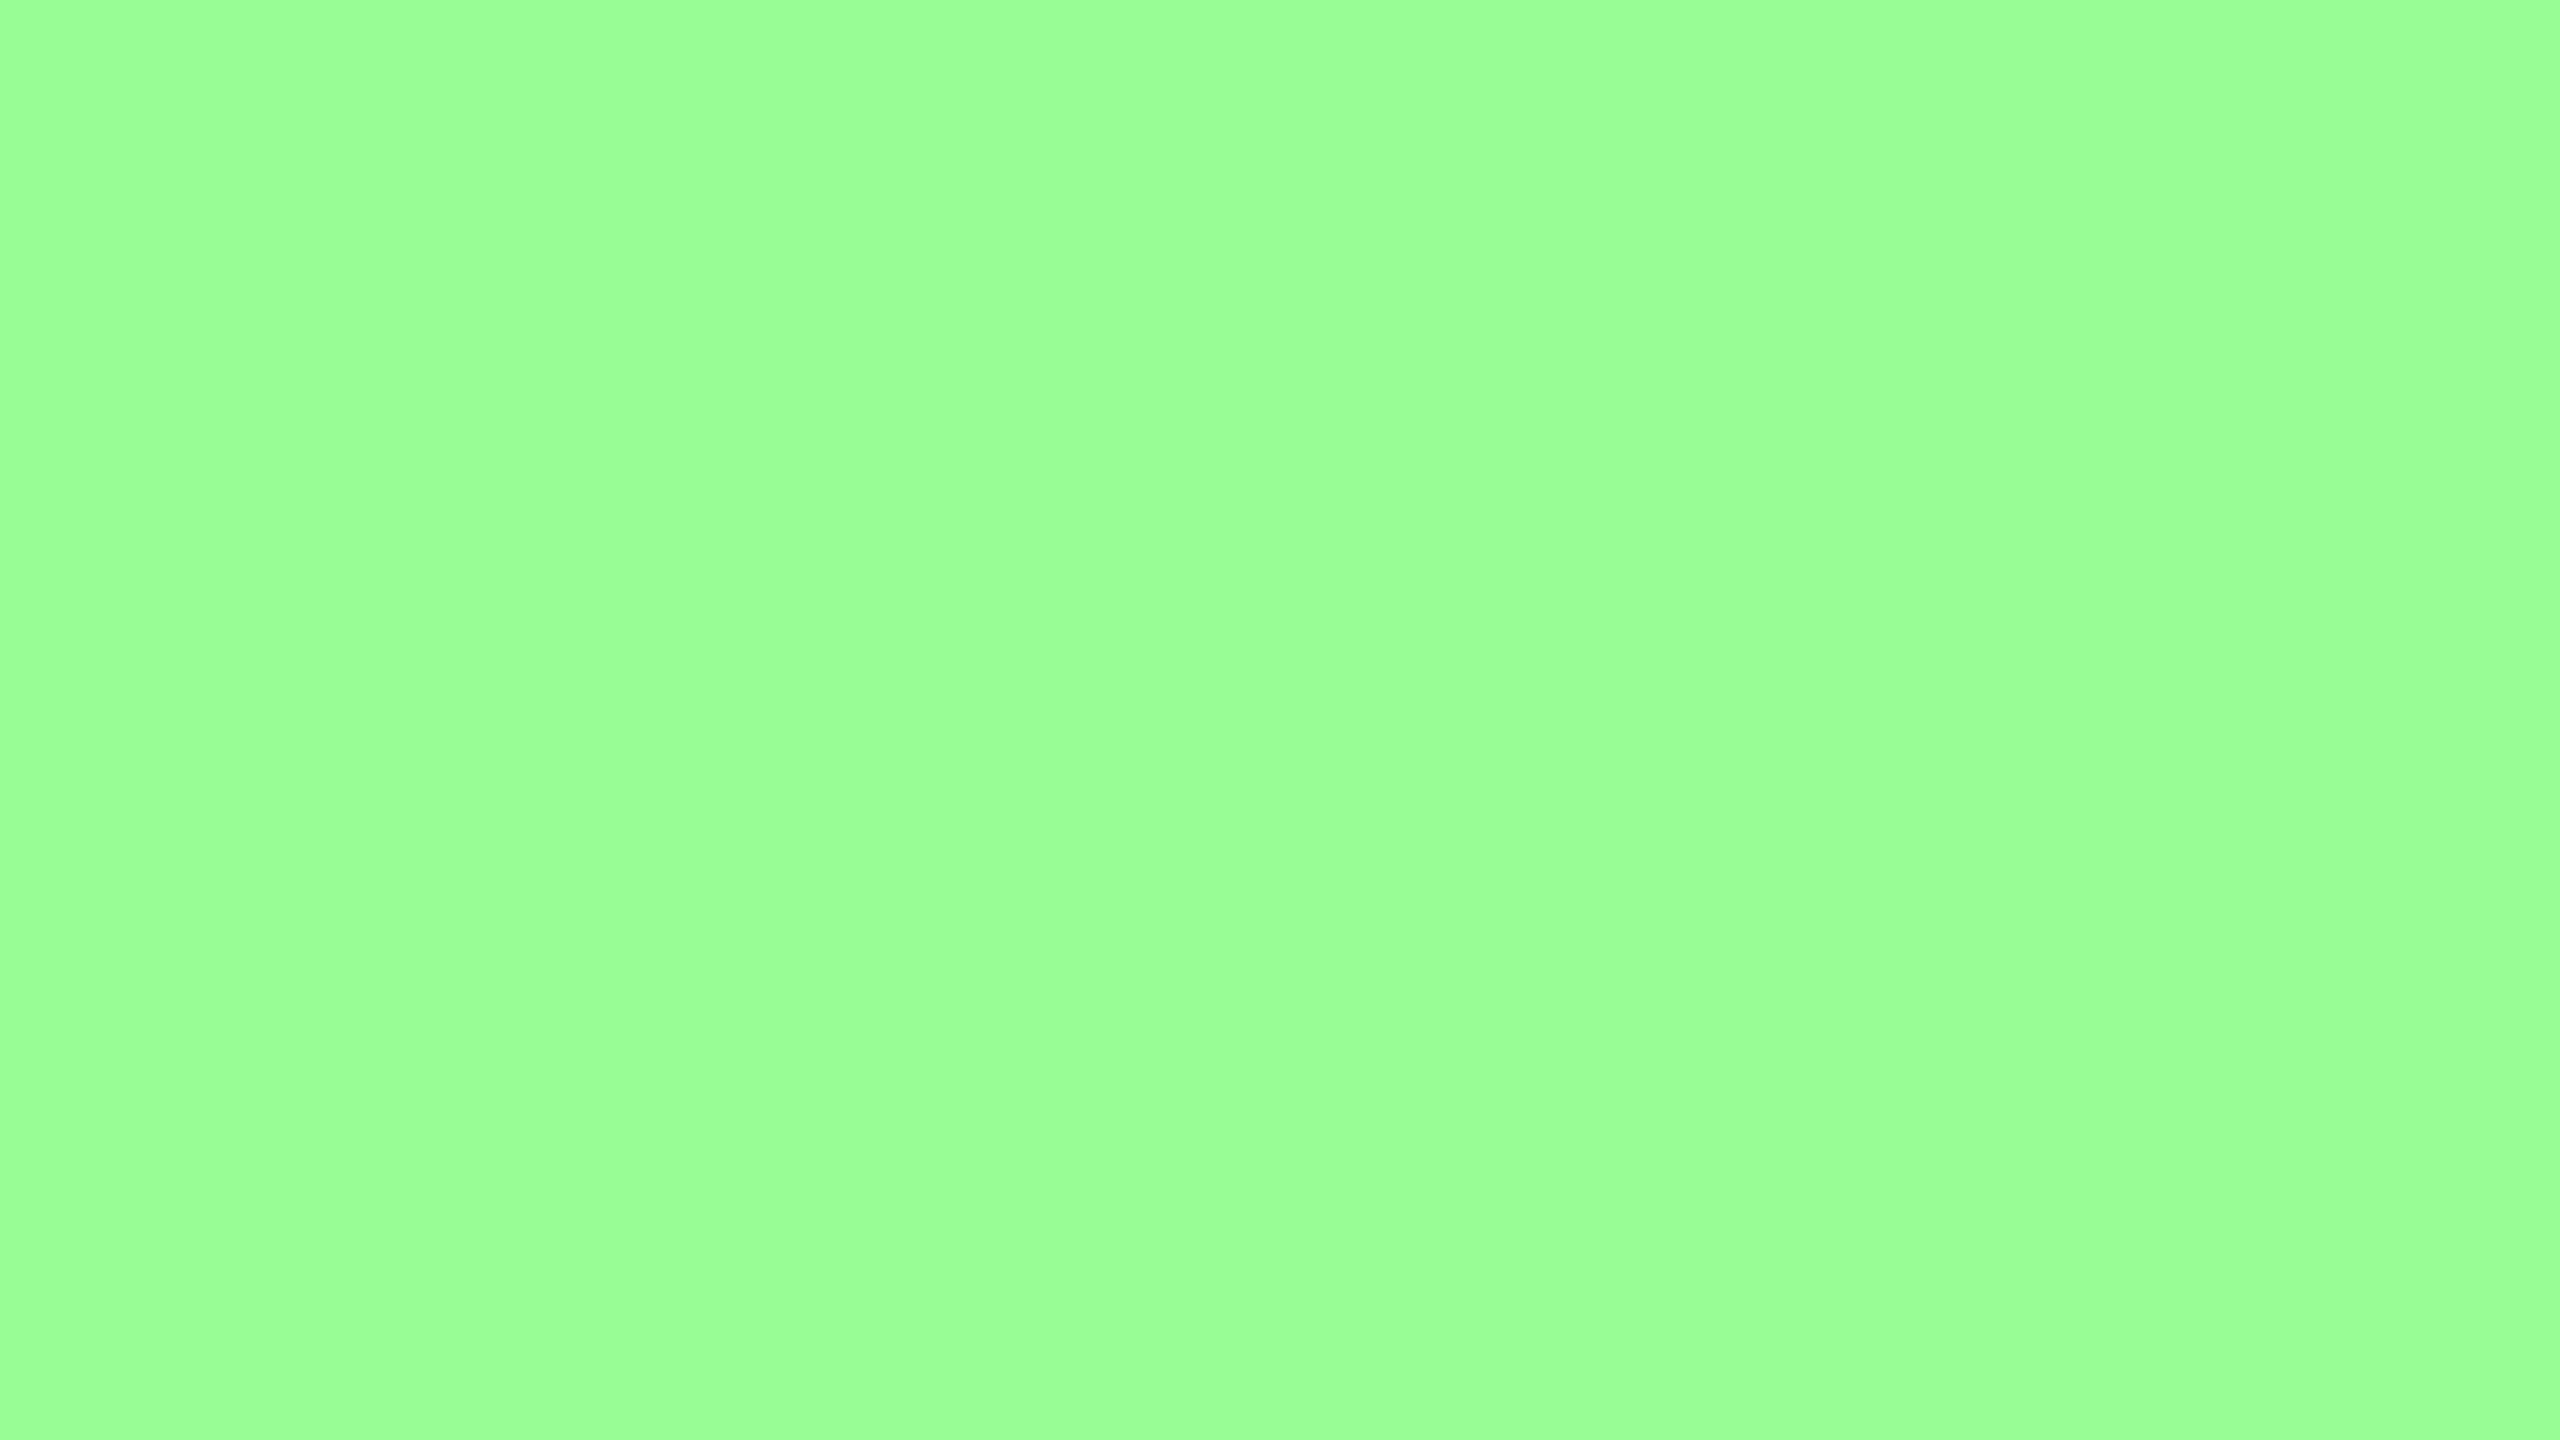 2560x1440 Pale Green Solid Color Background